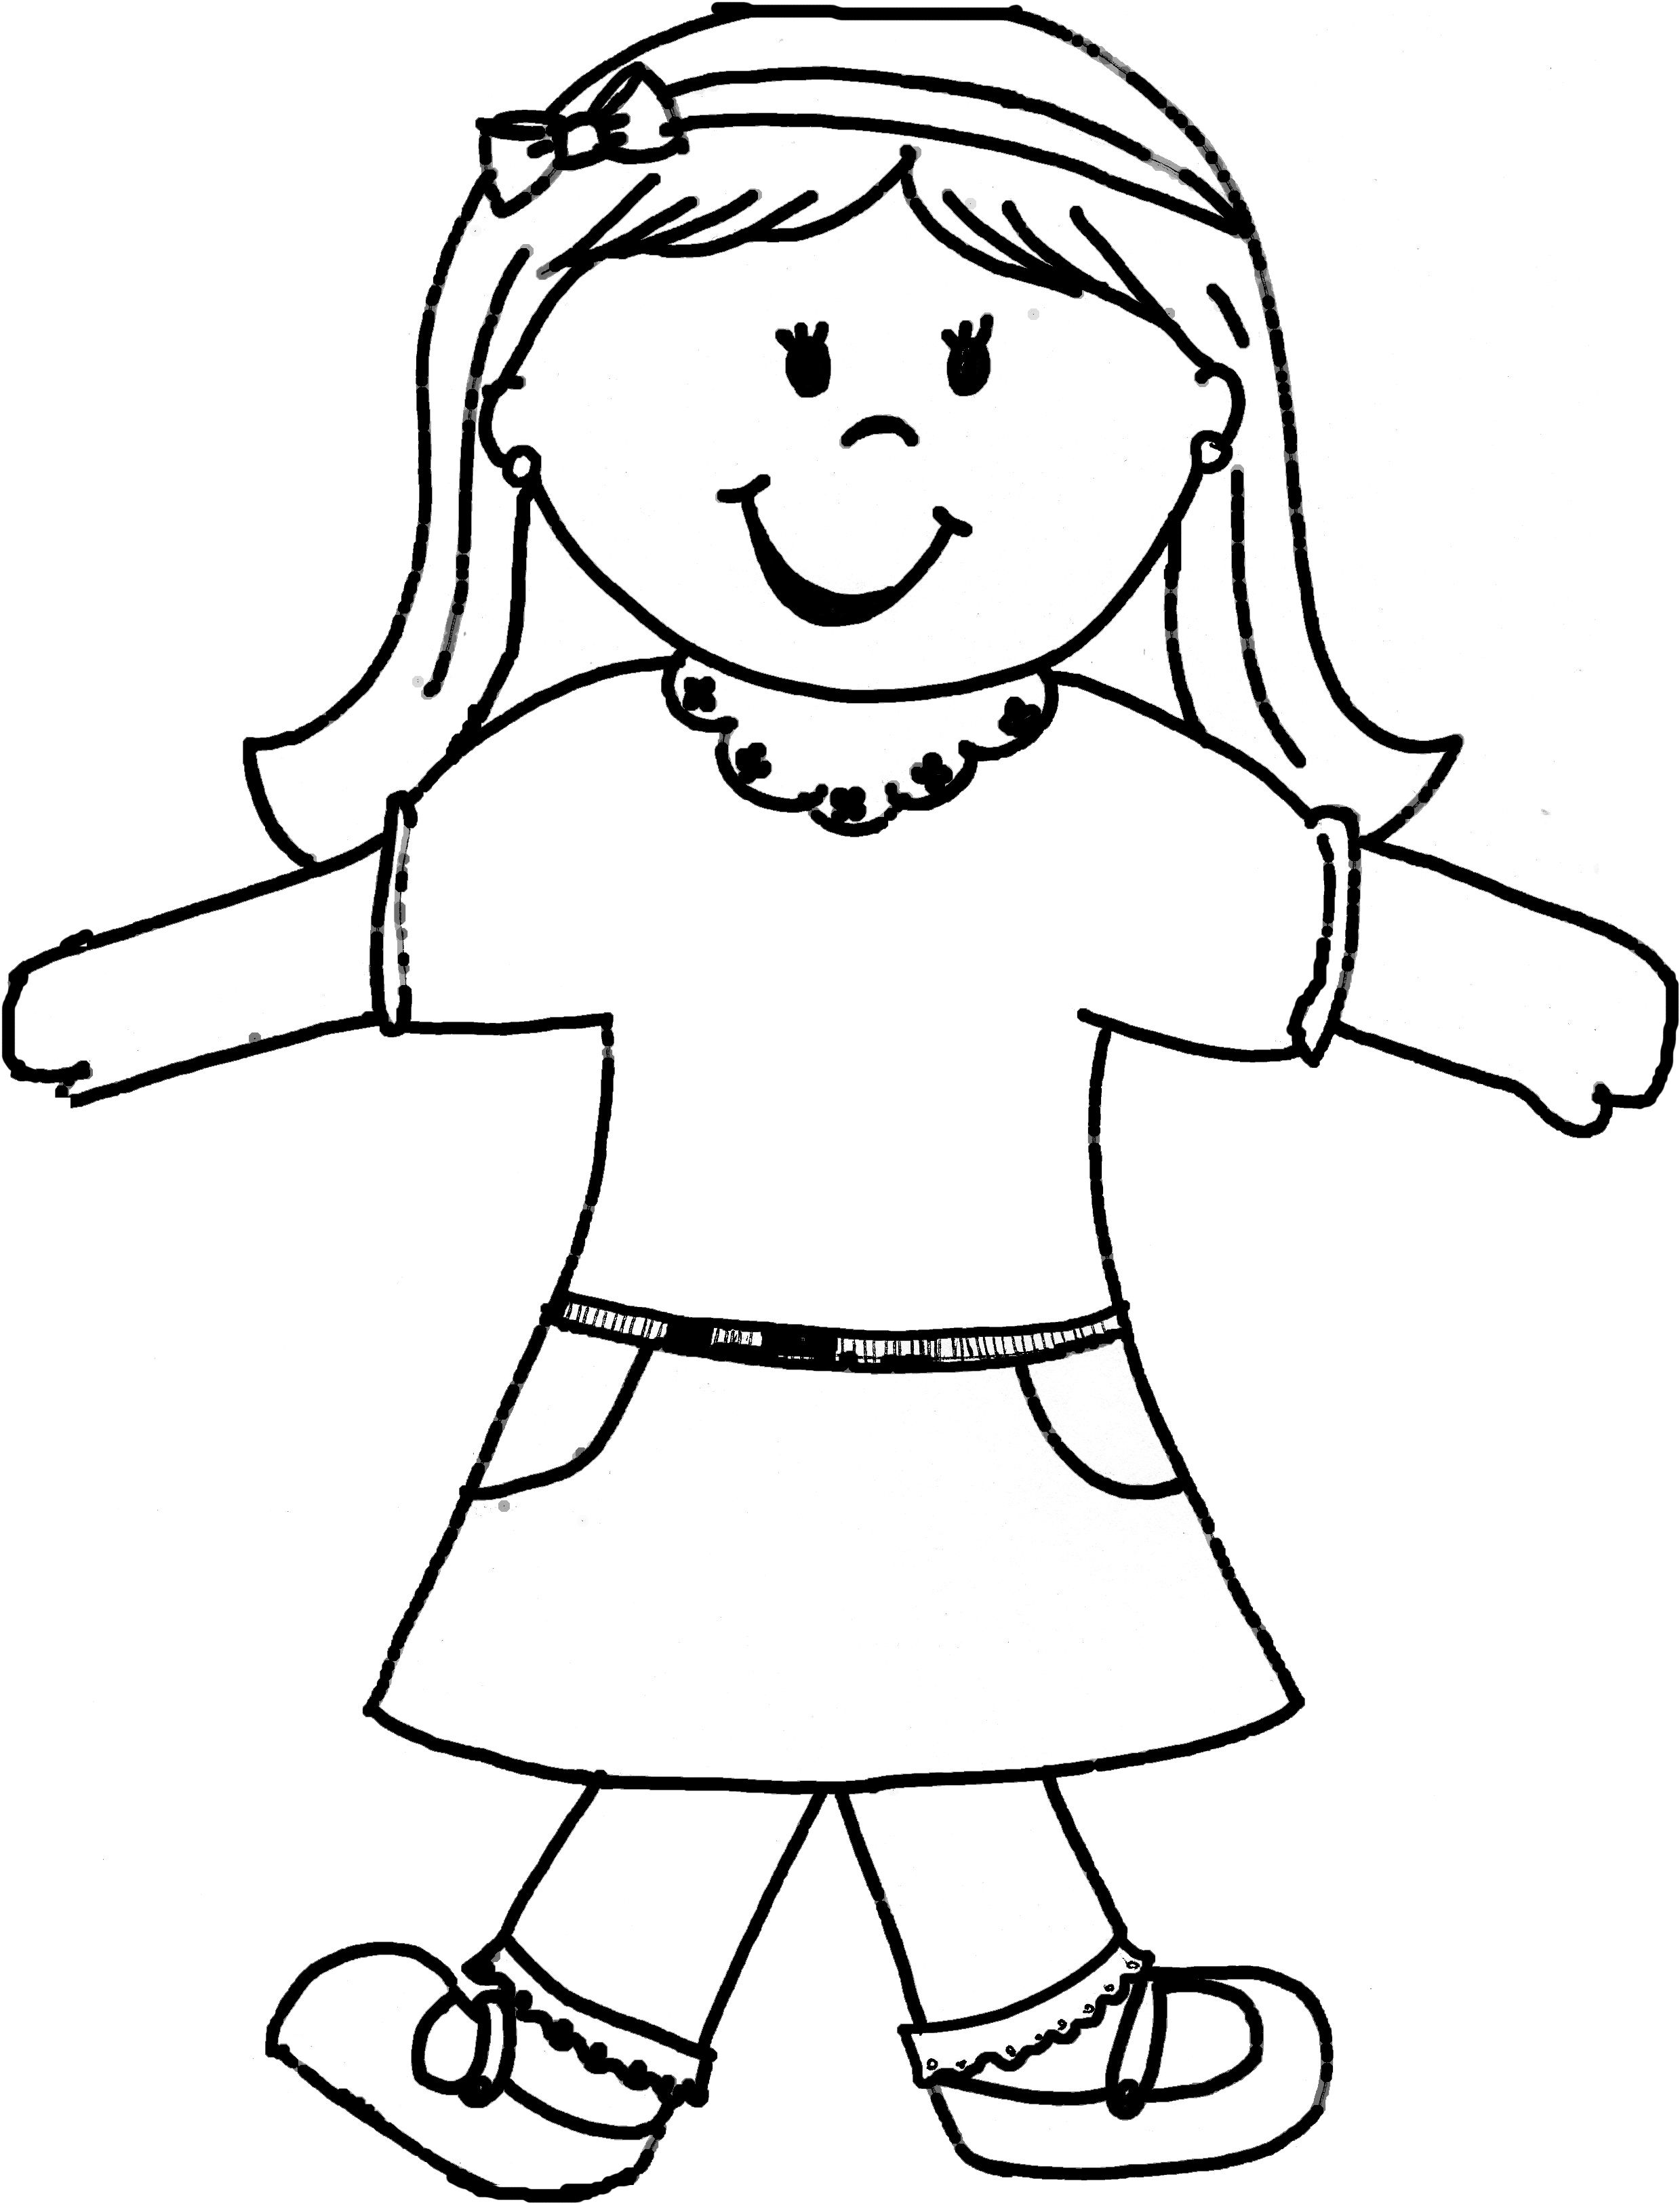 Flat stanley project google search flat stanley for Free printable flat stanley template